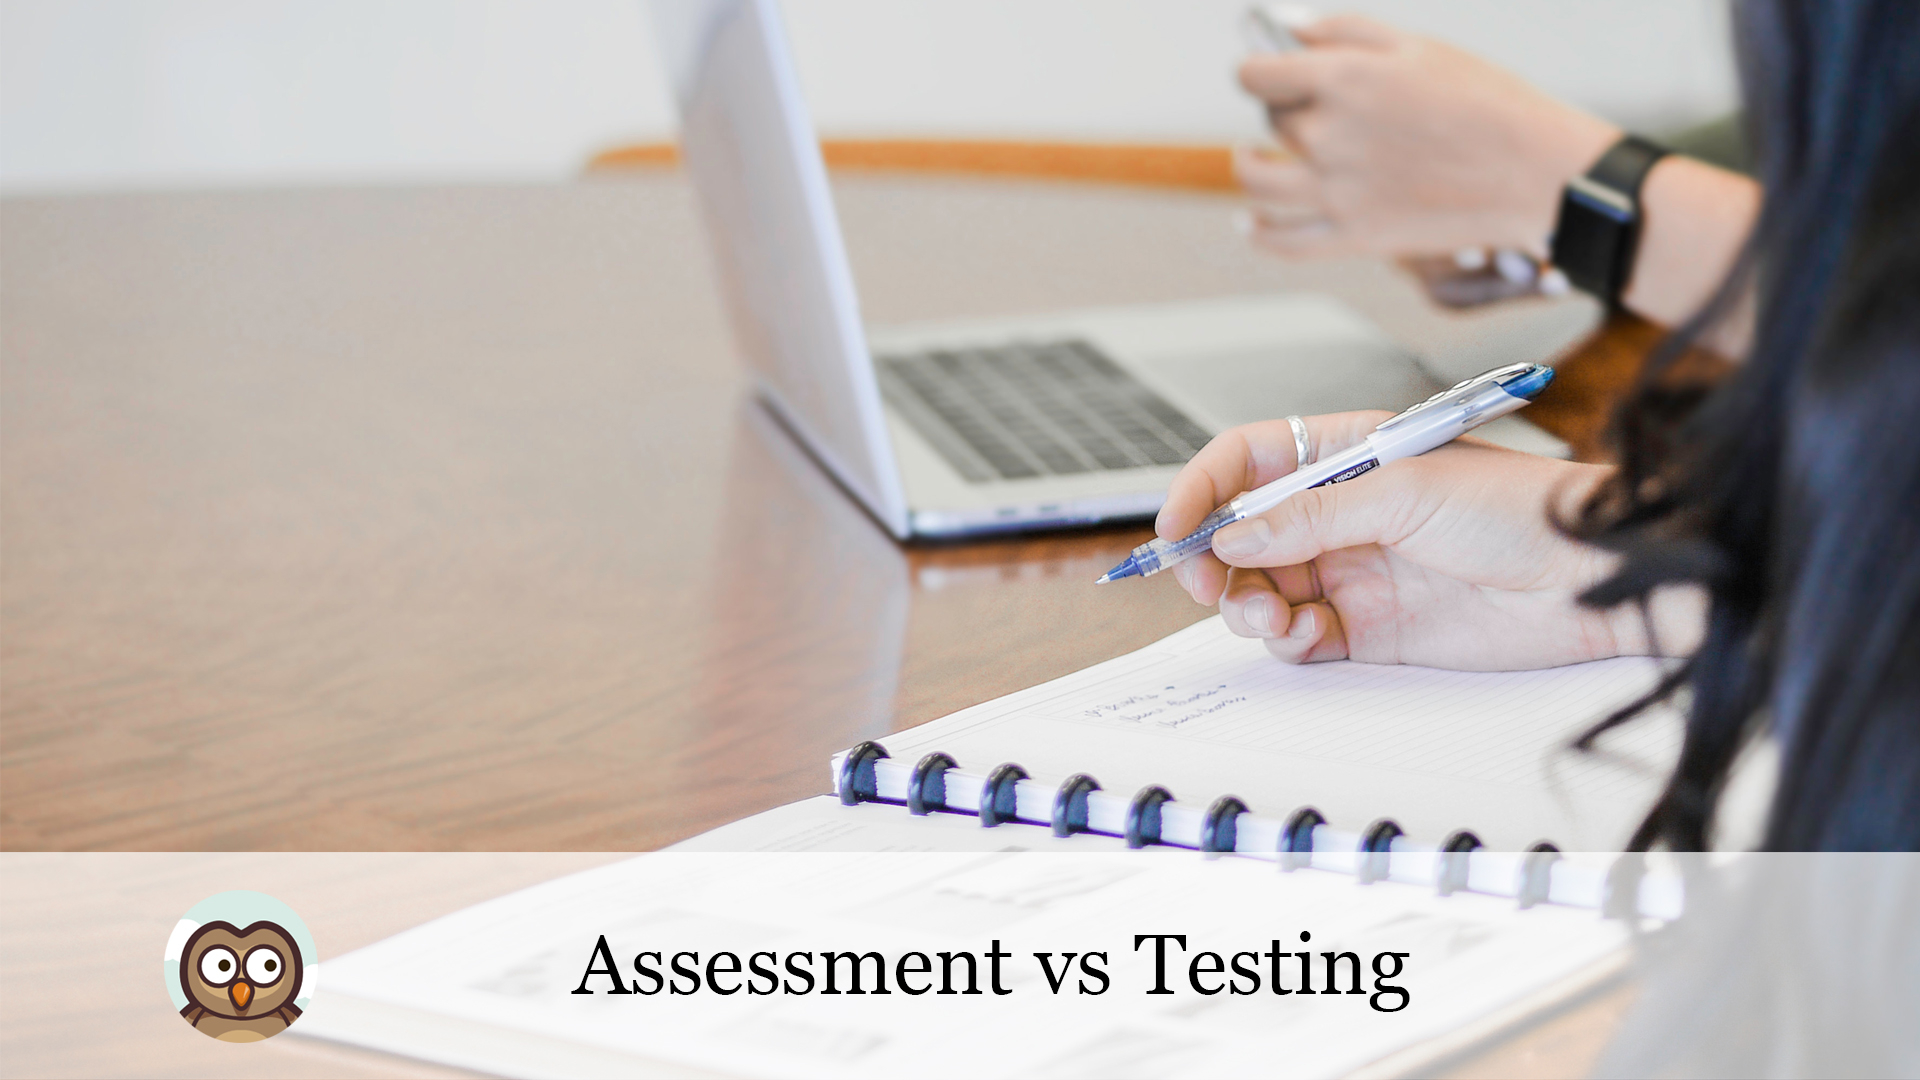 Assessment vs Testing